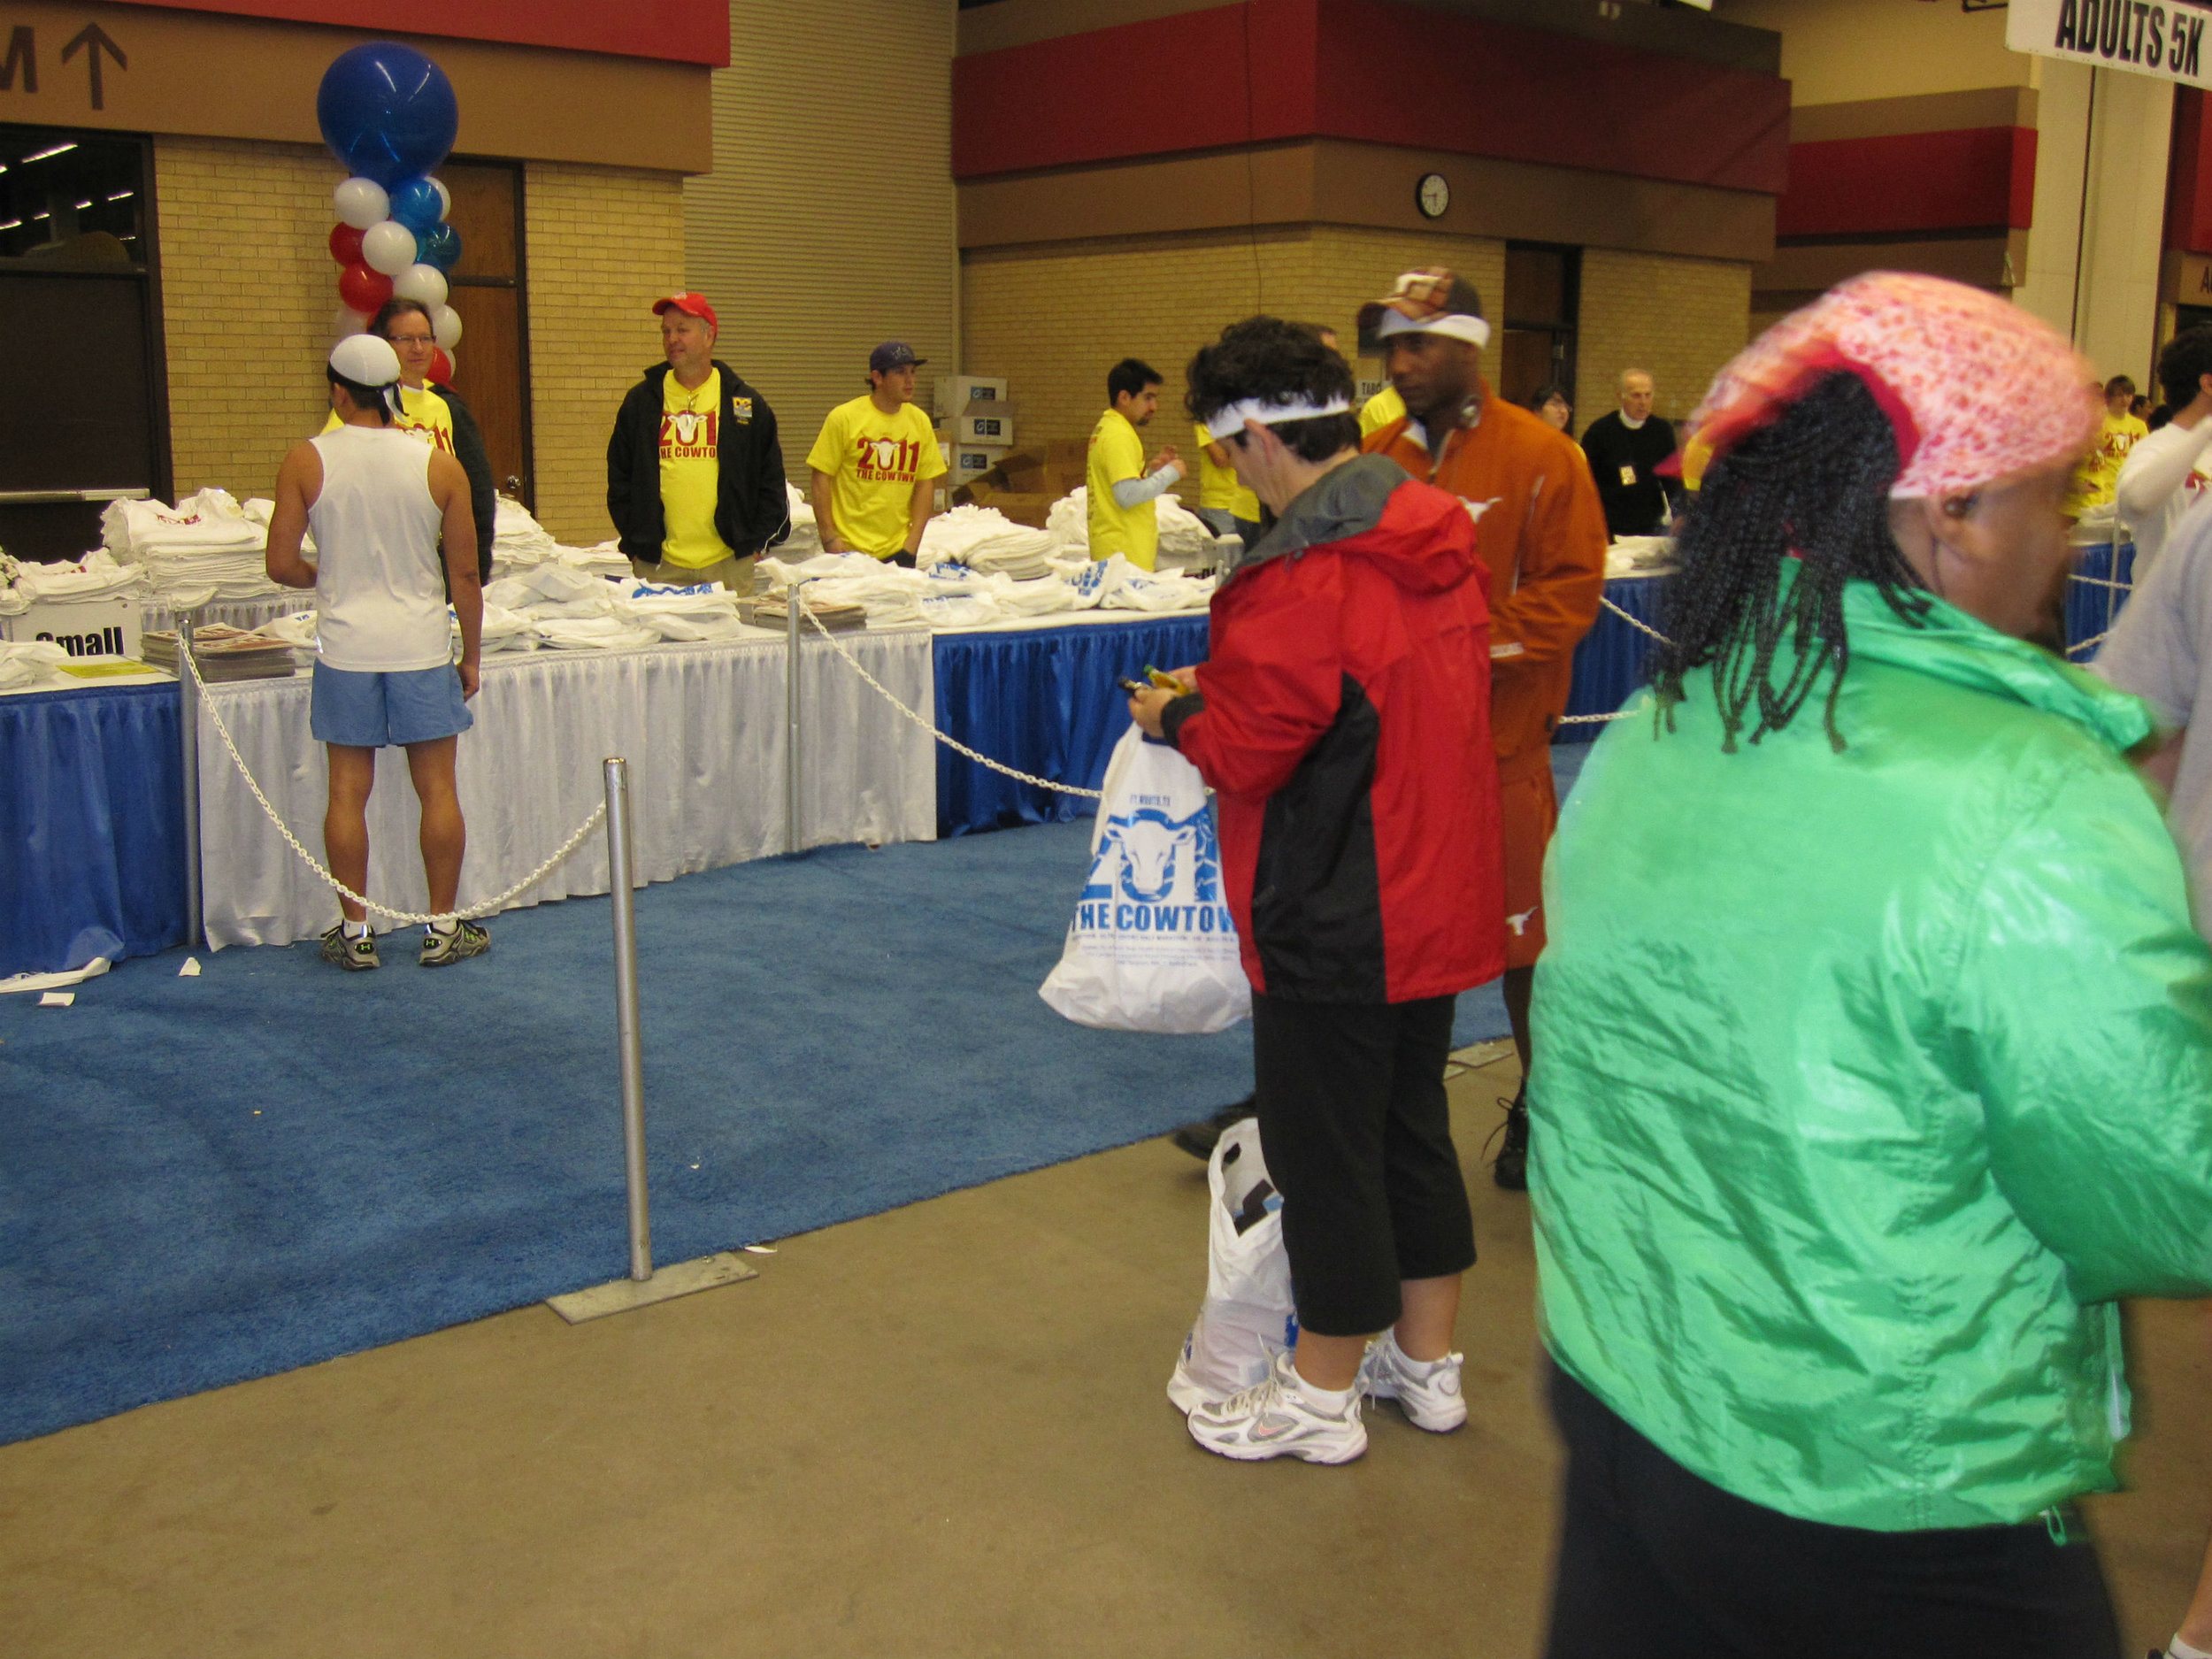 2011 Fort Worth, Texas. Registration before the run